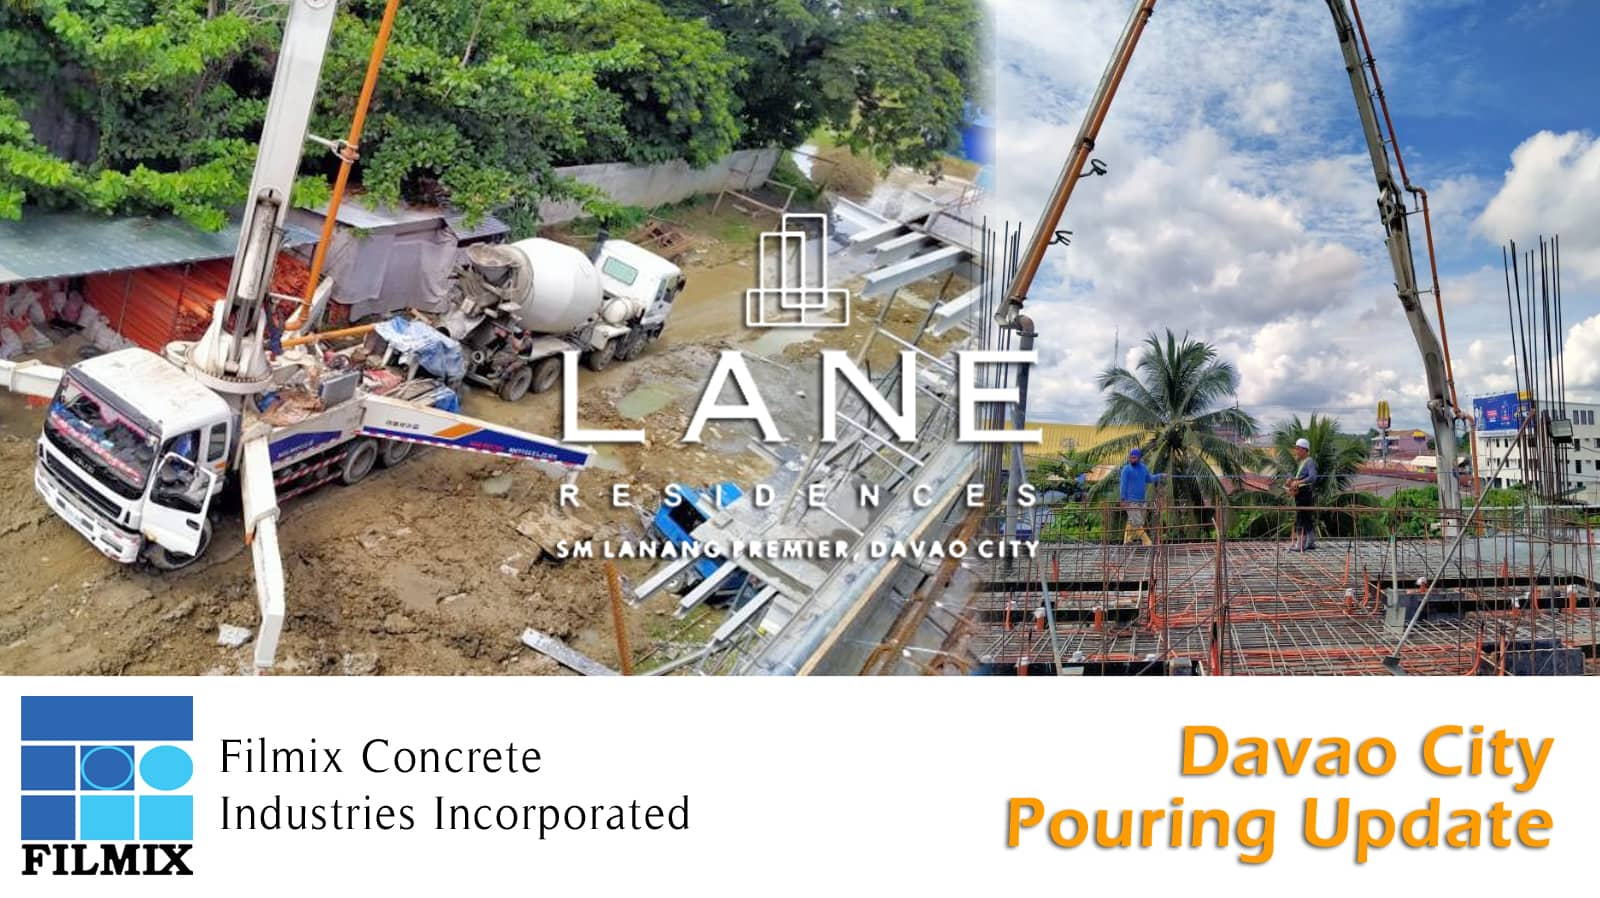 Ready mix concrete pouring update for Davao Lane Residences